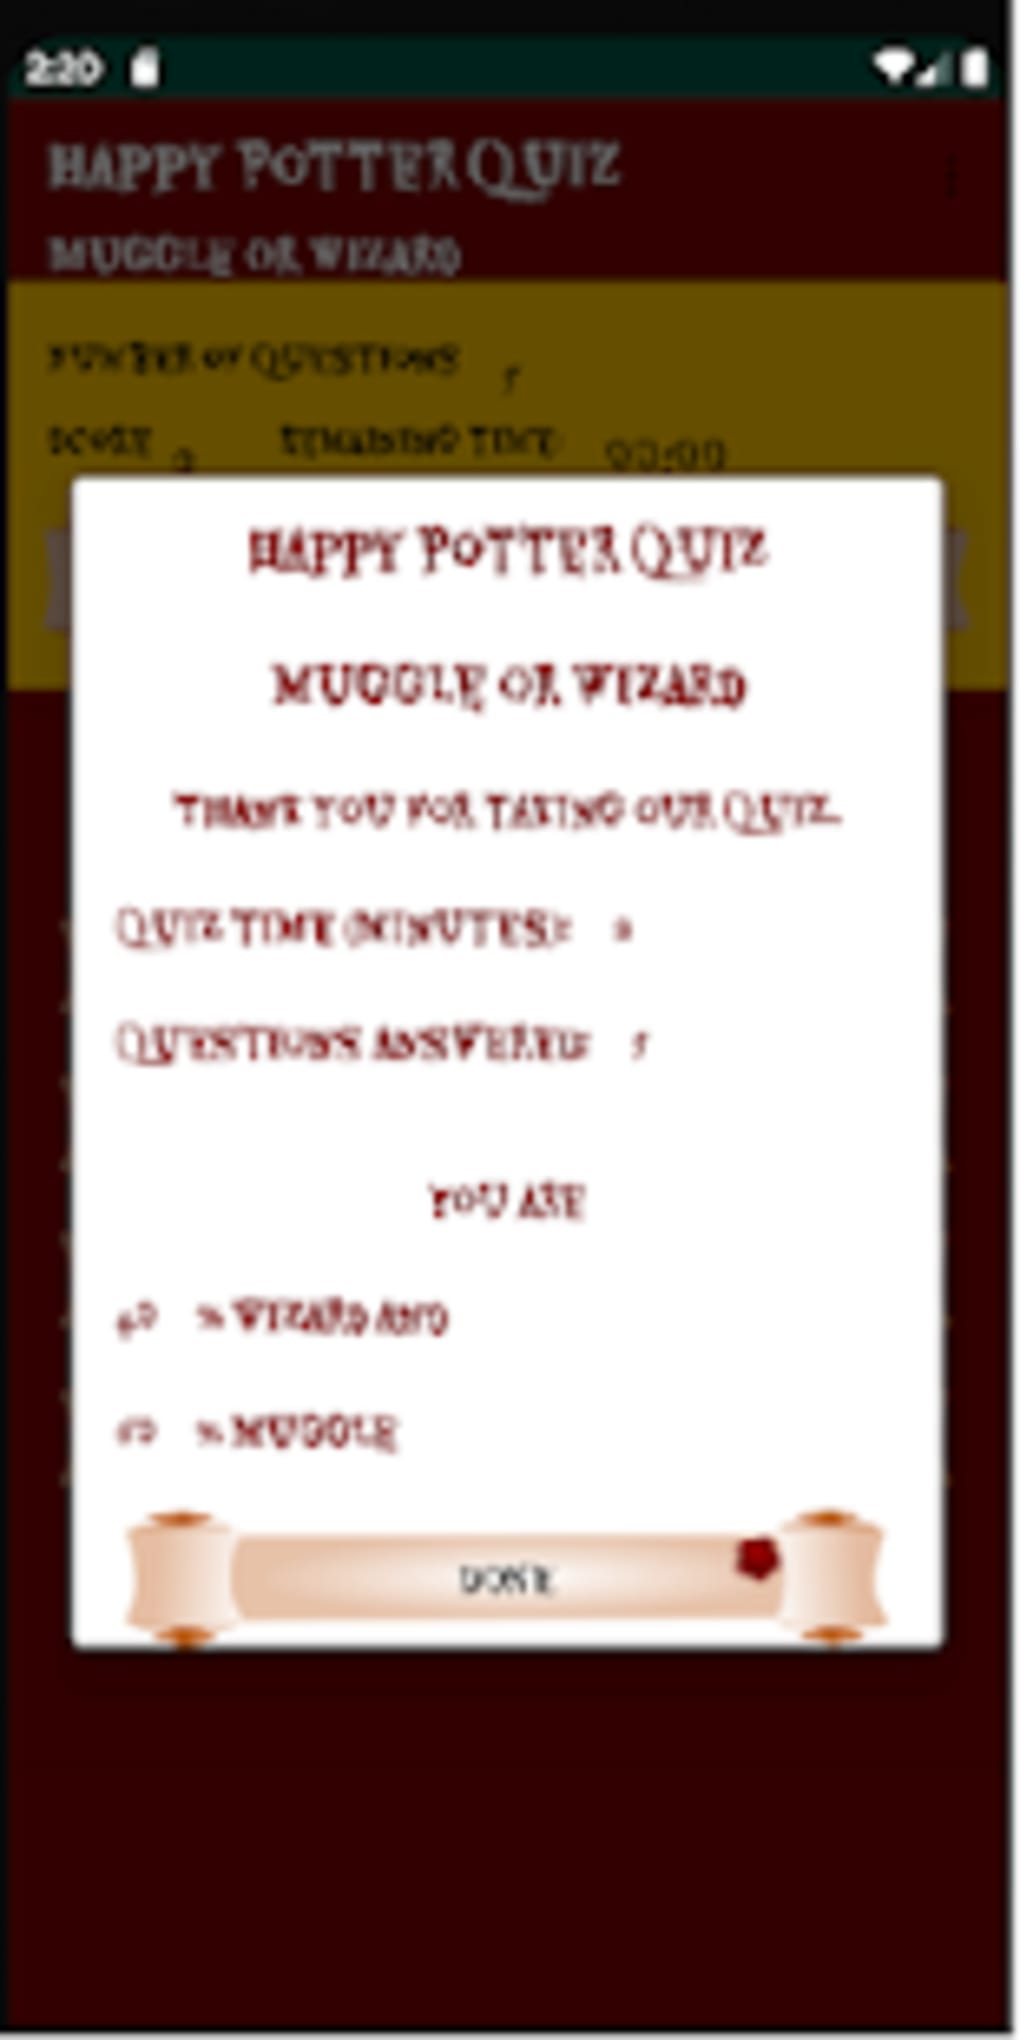 Harry Potter Quiz - Muggle or Wizard for Android - Download